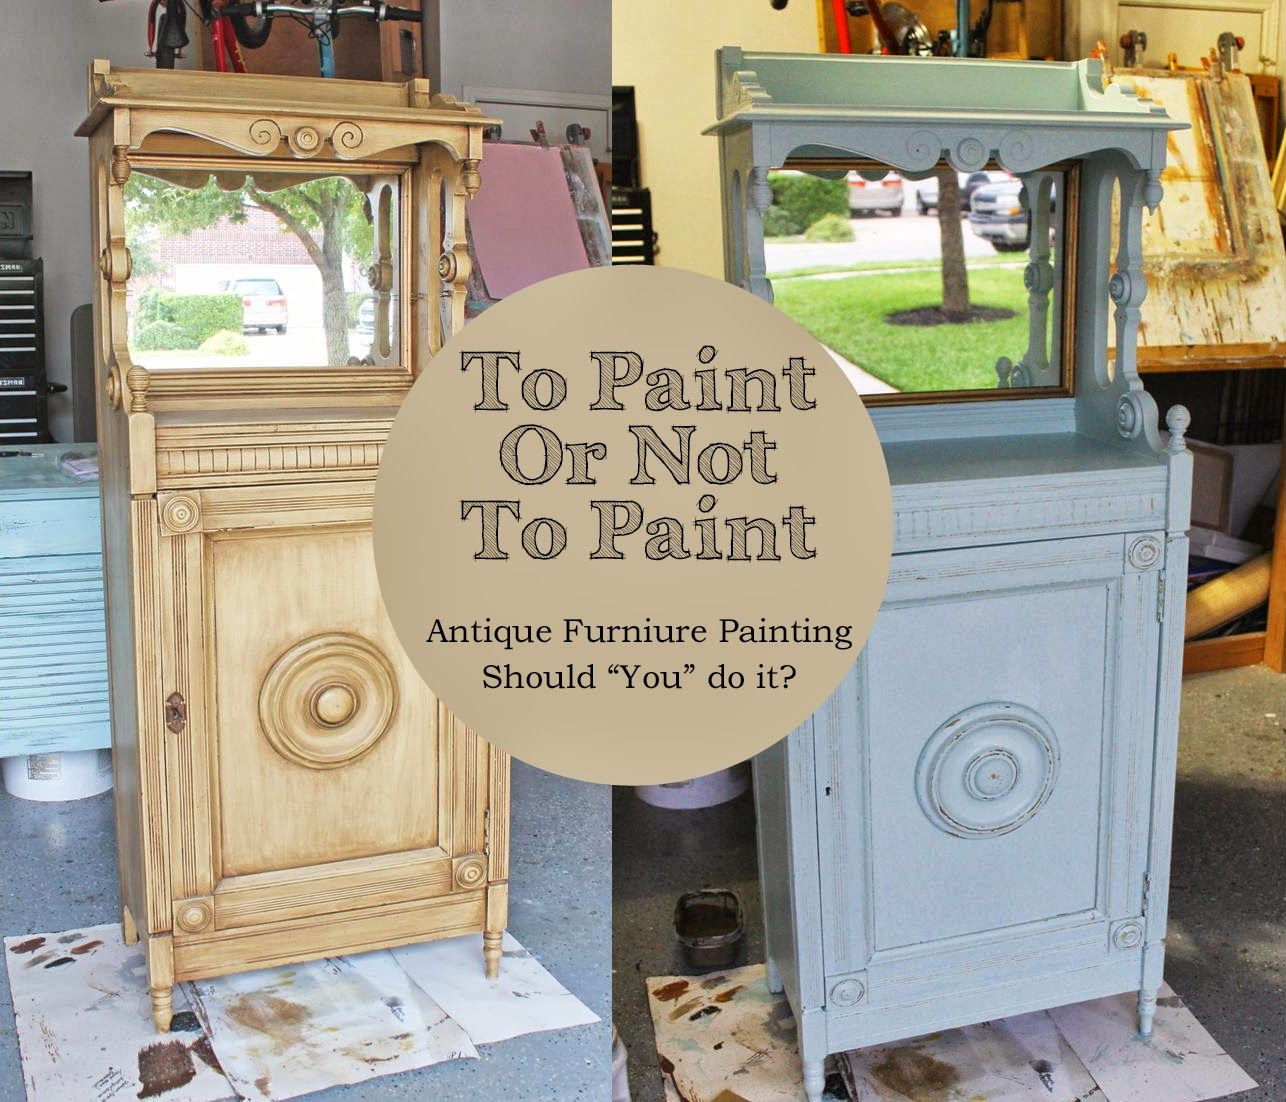 Antiquing wood with paint - Antiquing Furniture With Paint And Stain To Paint Or Not To Paint Antique Furniture